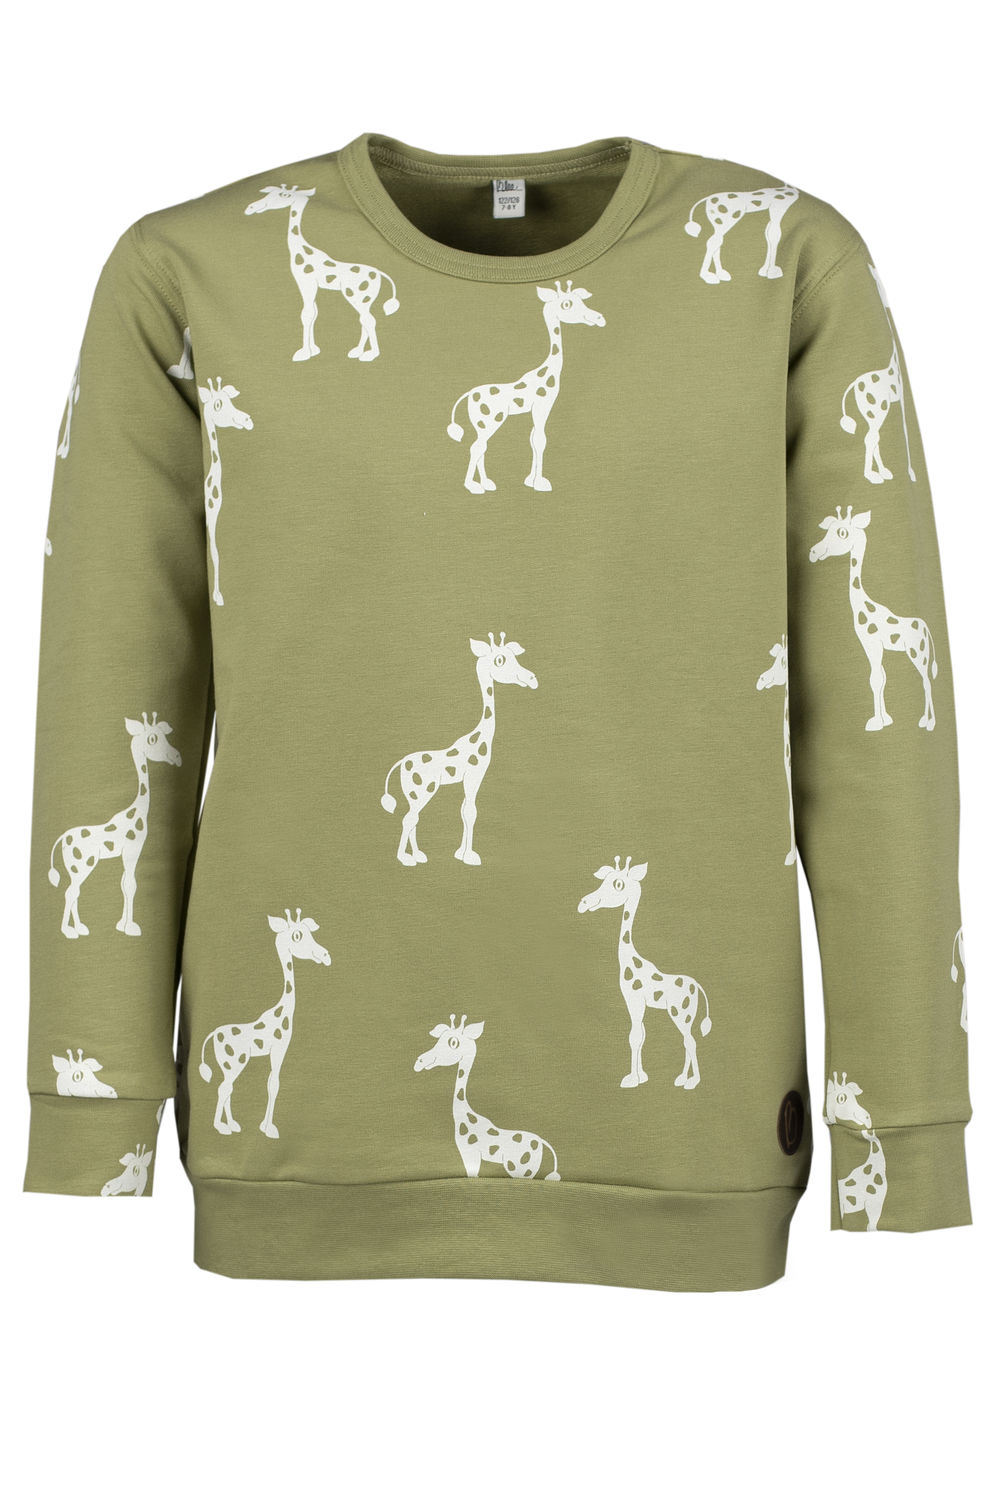 KISSI College Sweater, Giraffe Olive